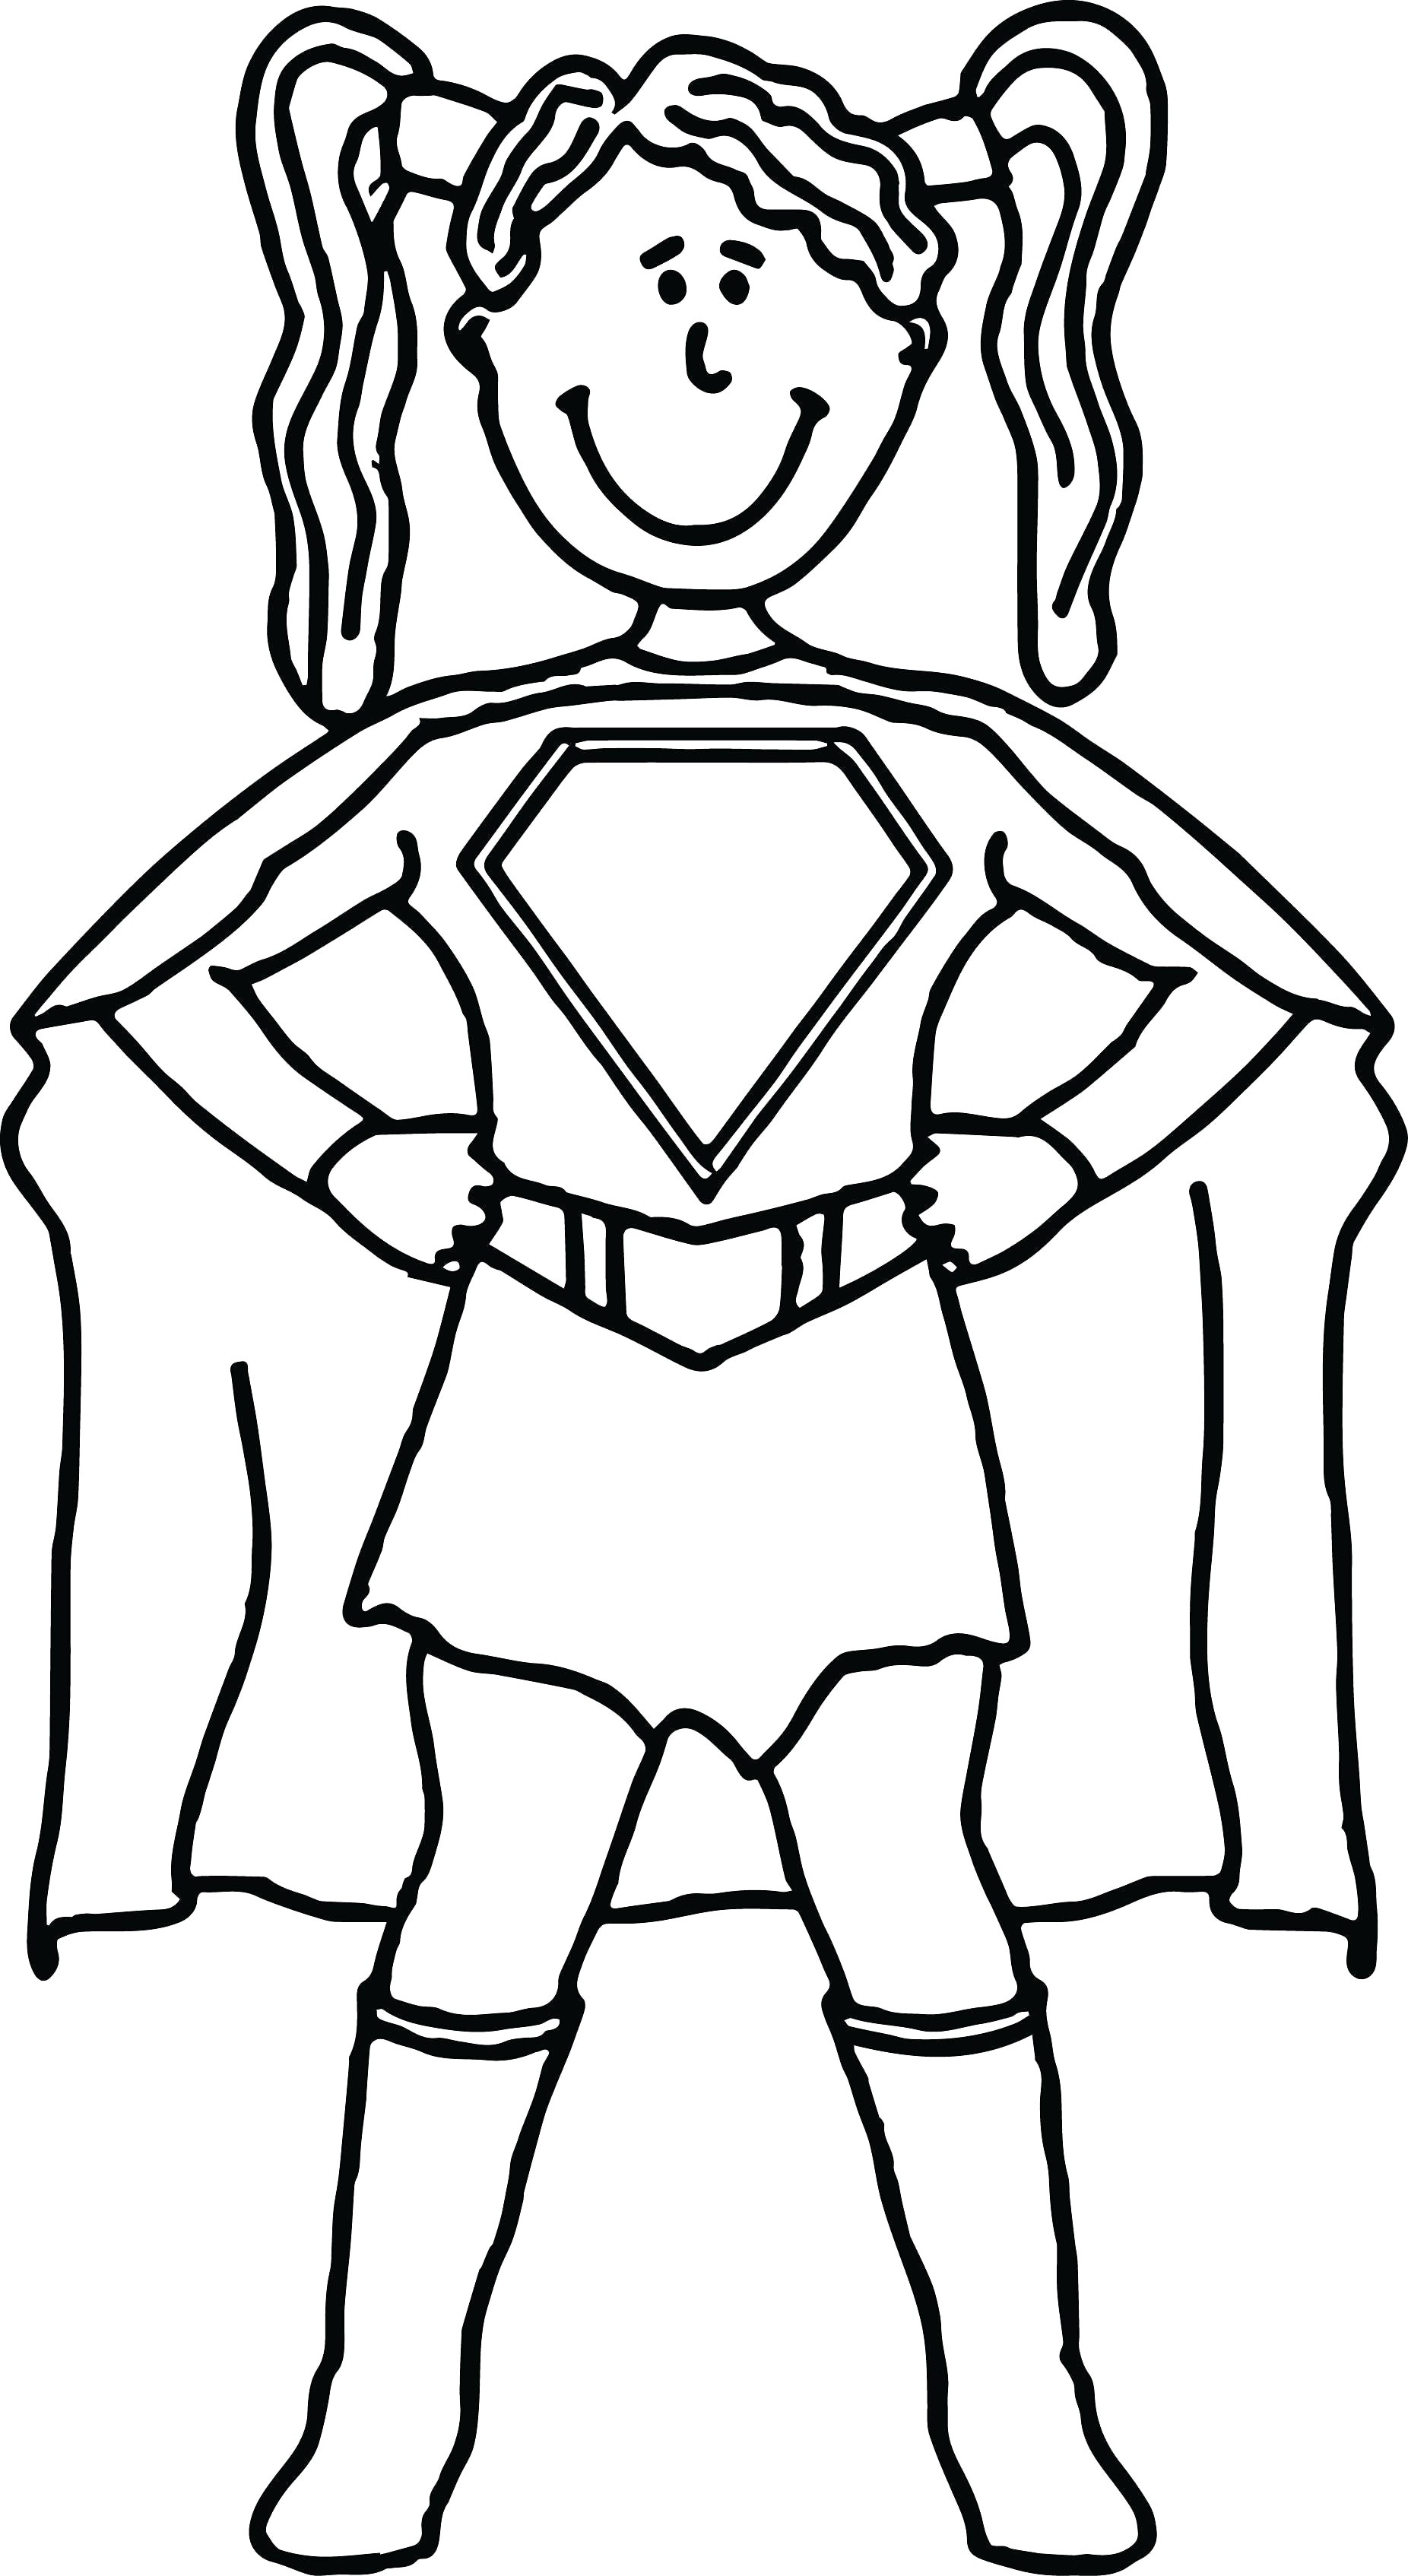 1852x3388 Superheroes Cartoon Characters Coloring Pages Easy Printable